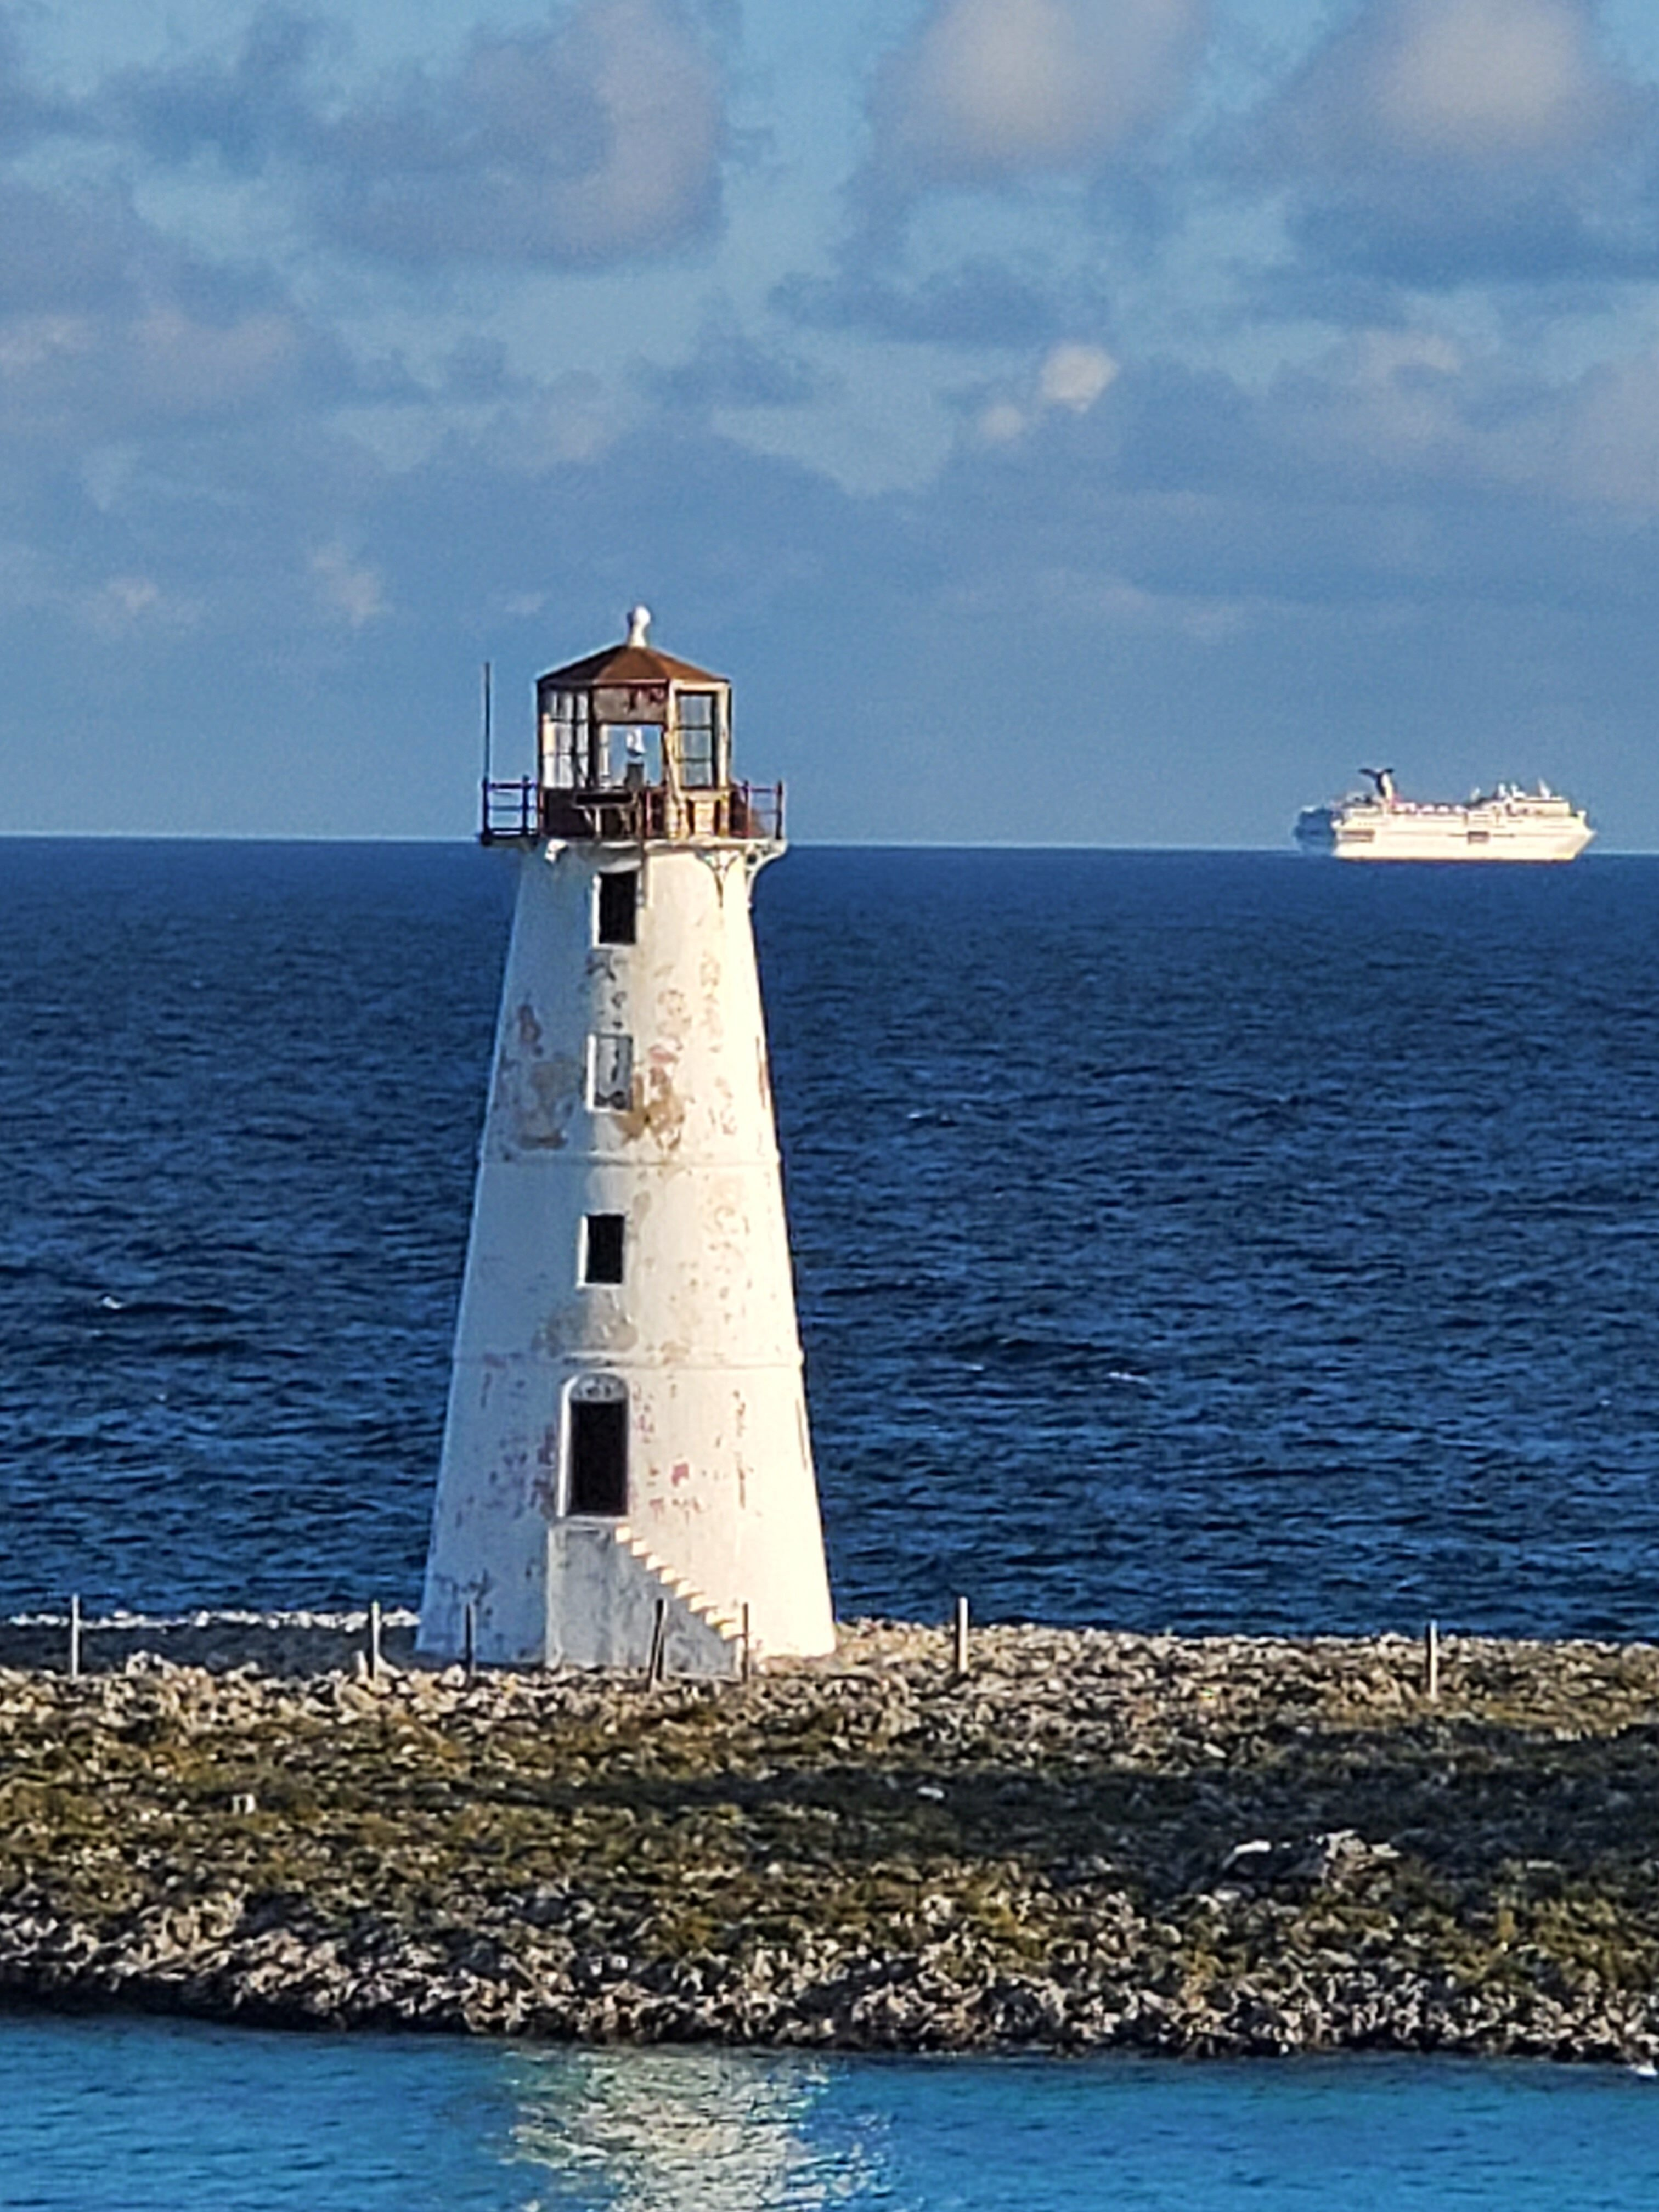 Hog Island Lighthouse - - Royal Caribbean offers up the Perfect 3 Day Weekend